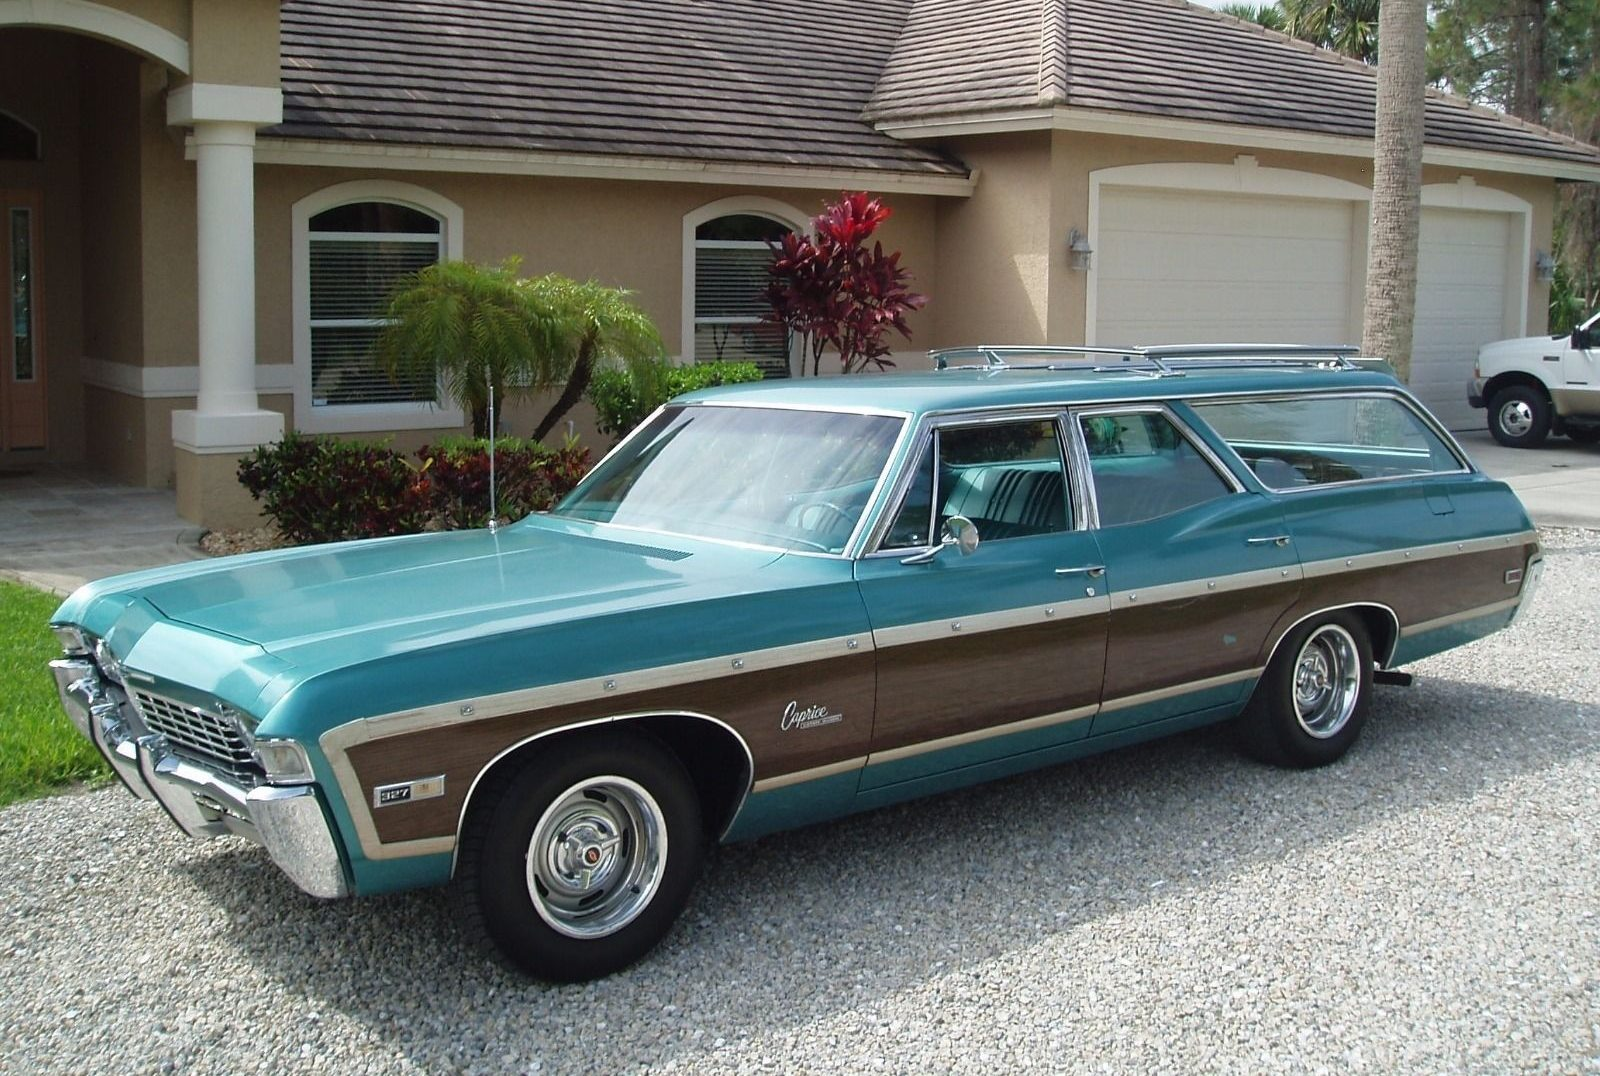 turquoise gem 1968 chevrolet caprice wagon survivor. Black Bedroom Furniture Sets. Home Design Ideas